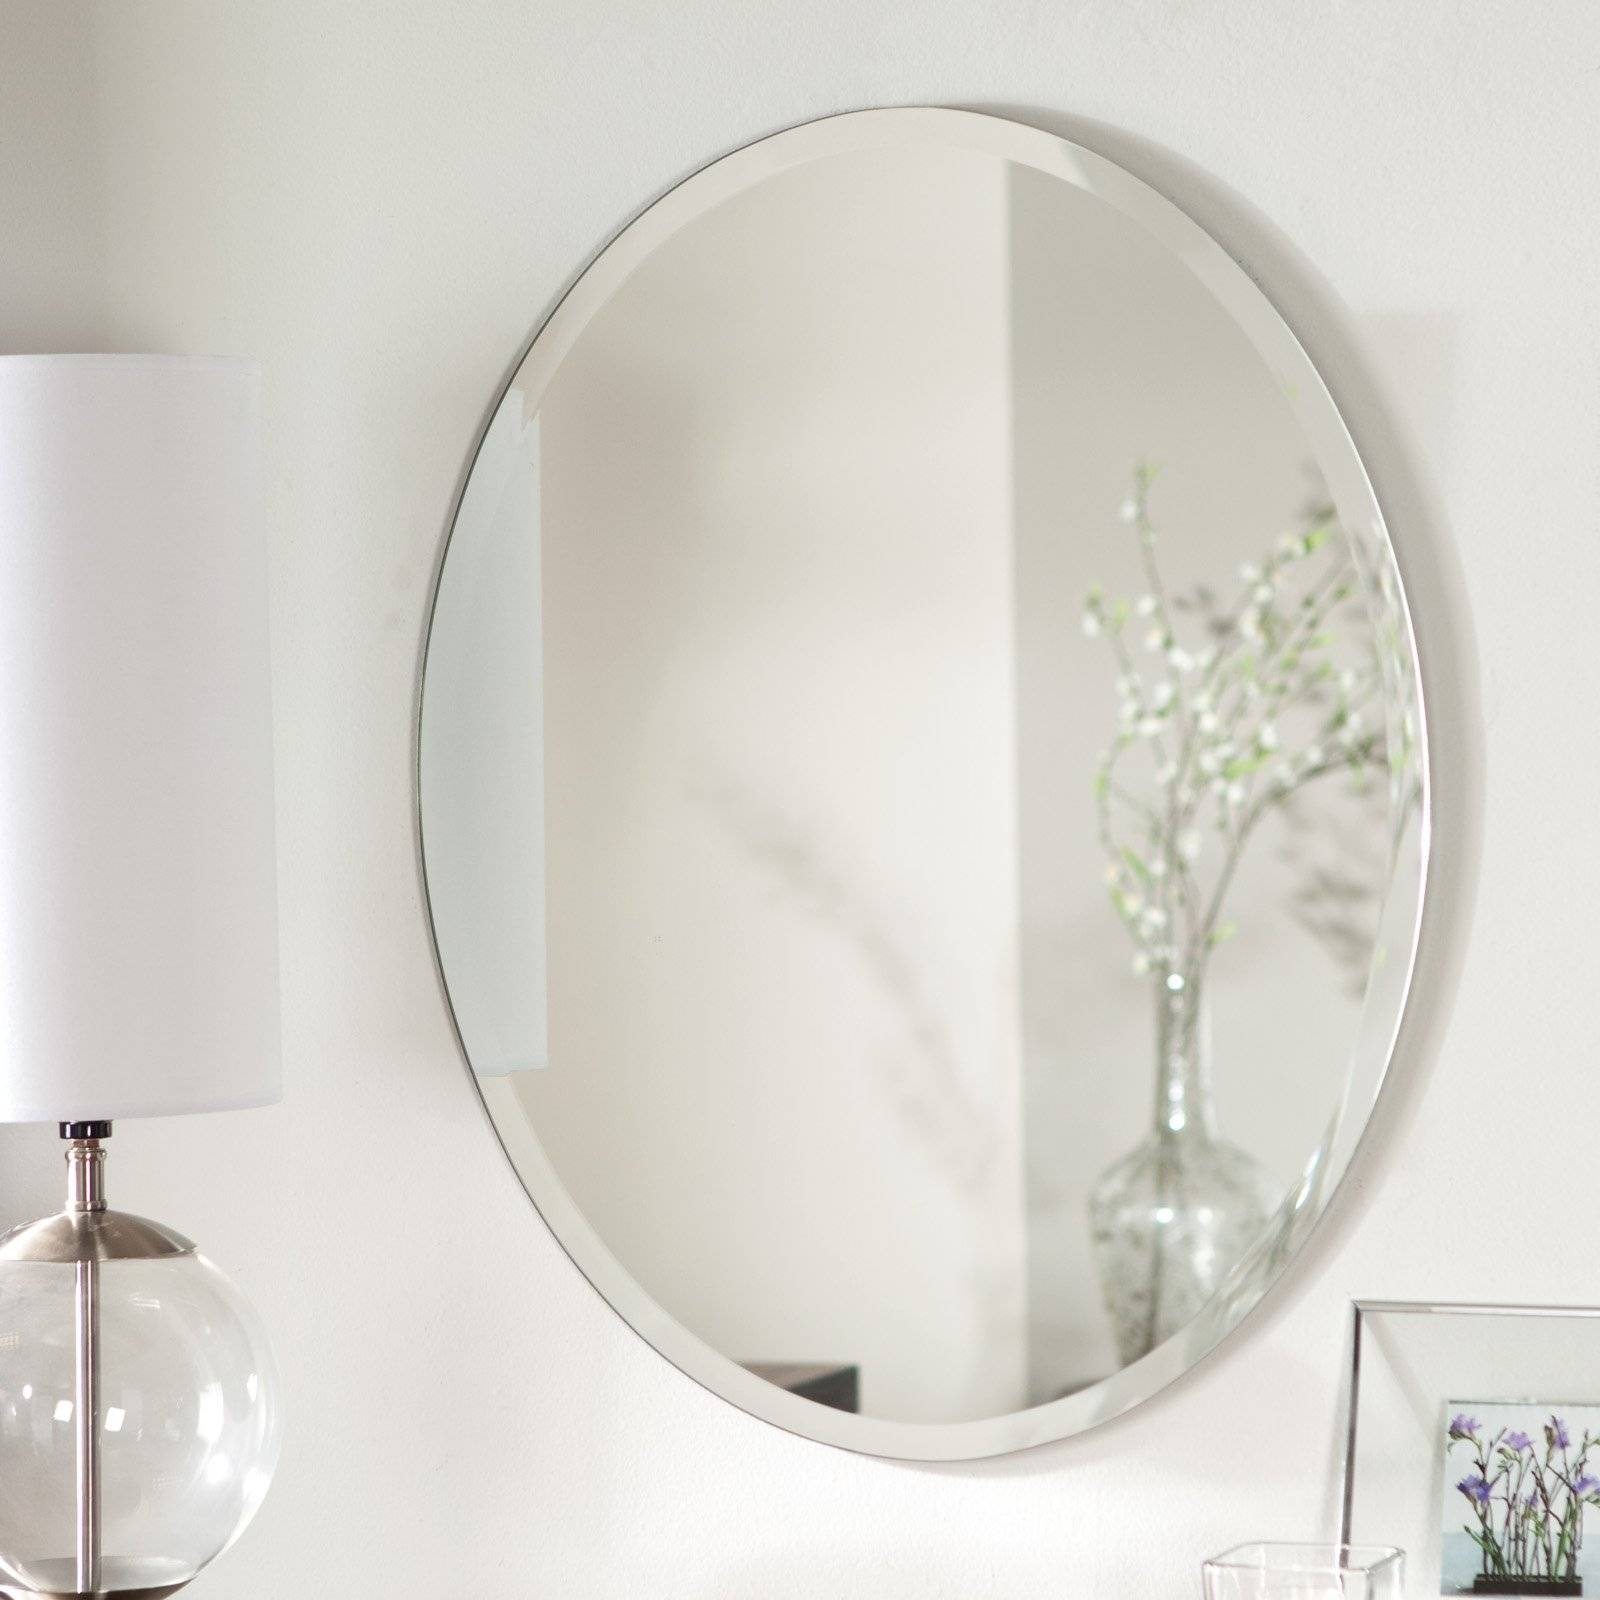 Décor Wonderland Frameless Aldo Wall Mirror - 23.5W X 31.5H In throughout Oval Wall Mirrors (Image 8 of 25)